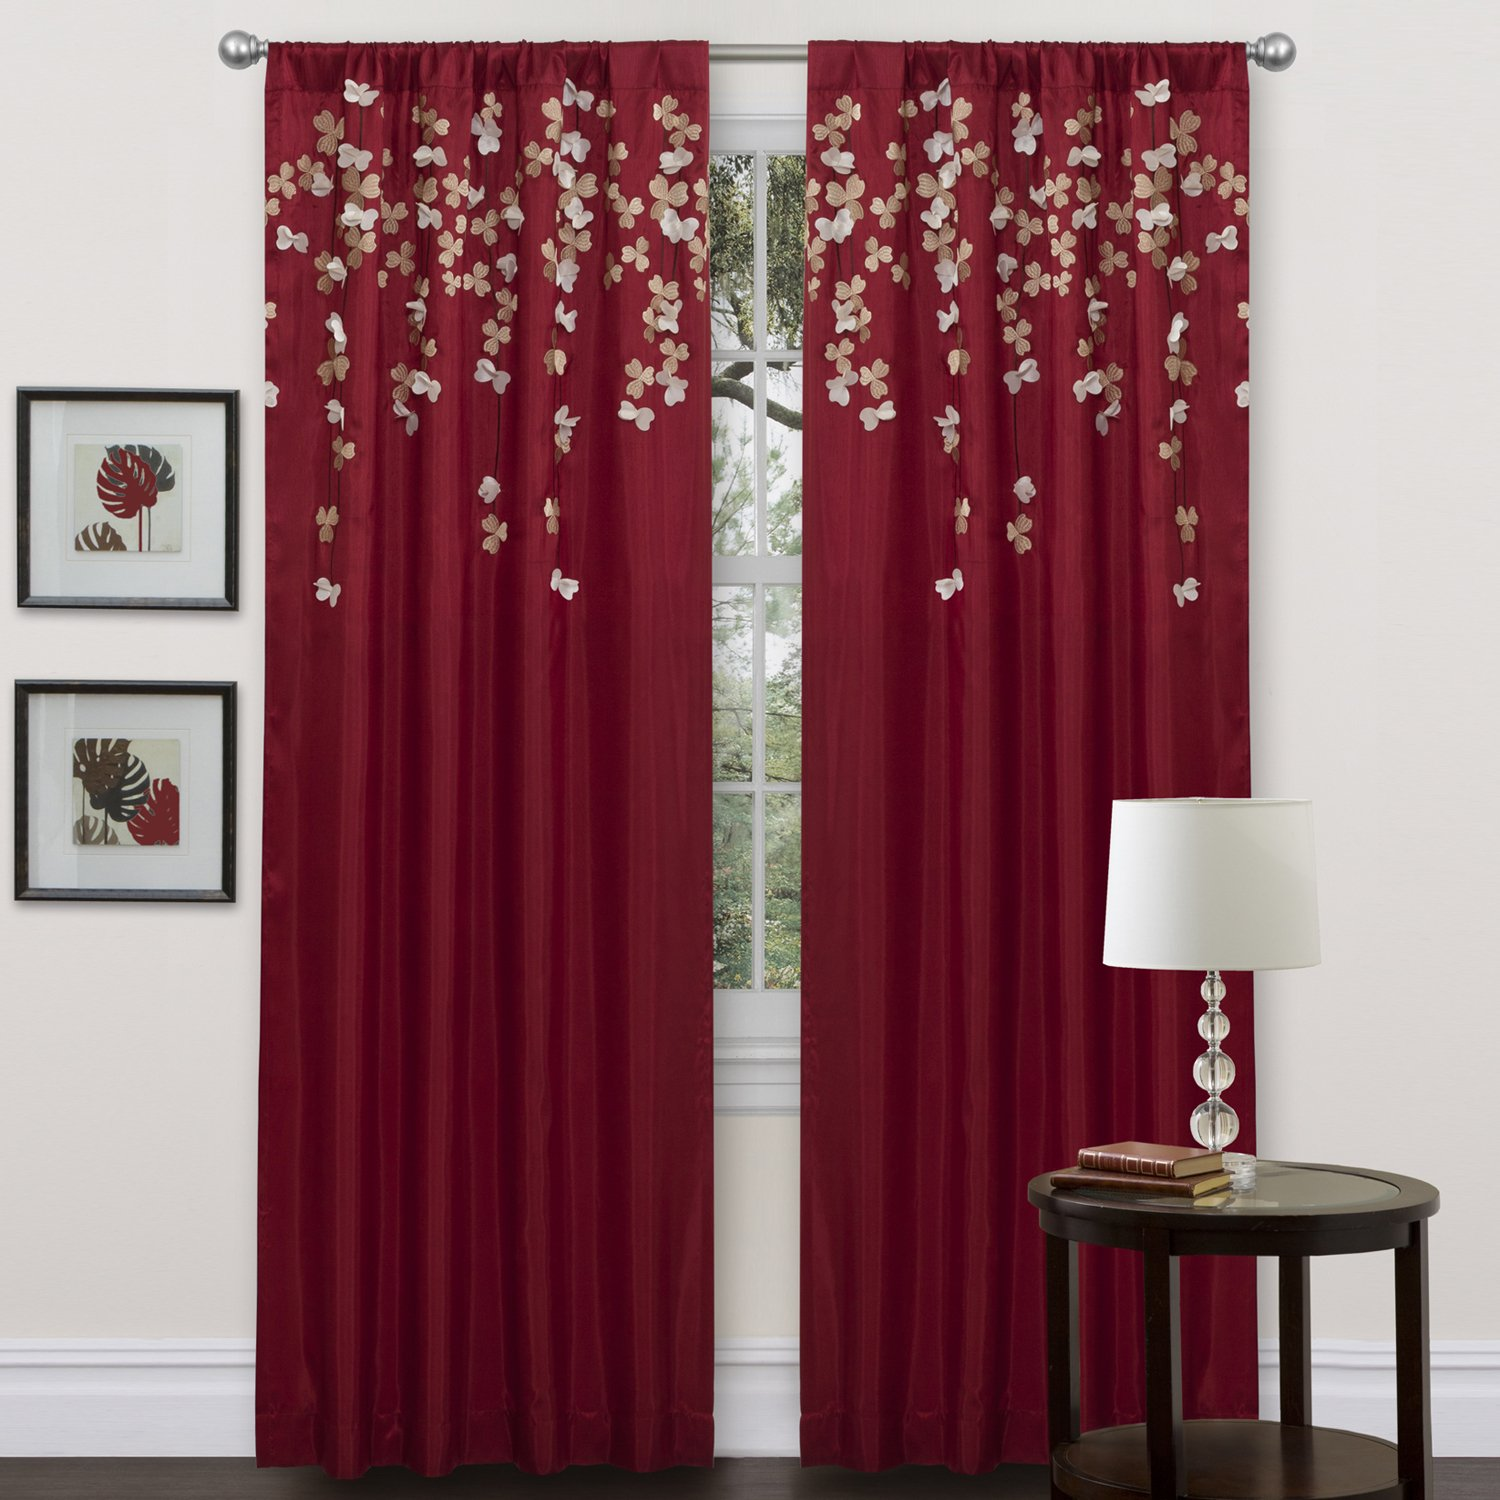 curtain beautiful color bright curtains living orange for room ideas